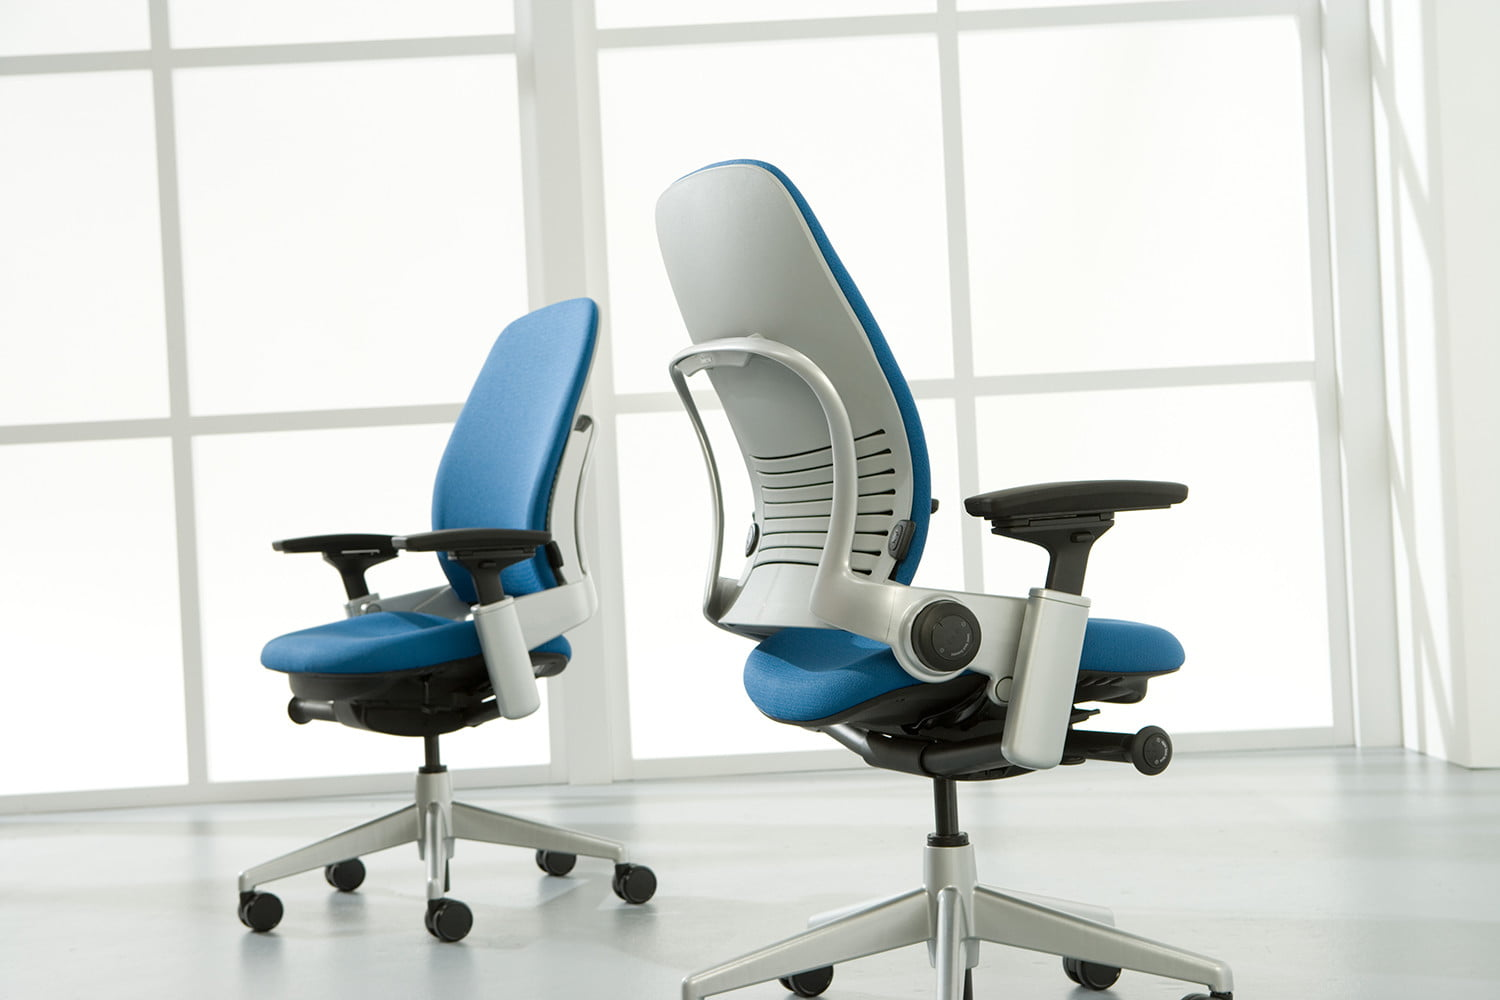 Best Office Desk Chairs The 9 Best Desk Chairs For Home And Office Digital Trends